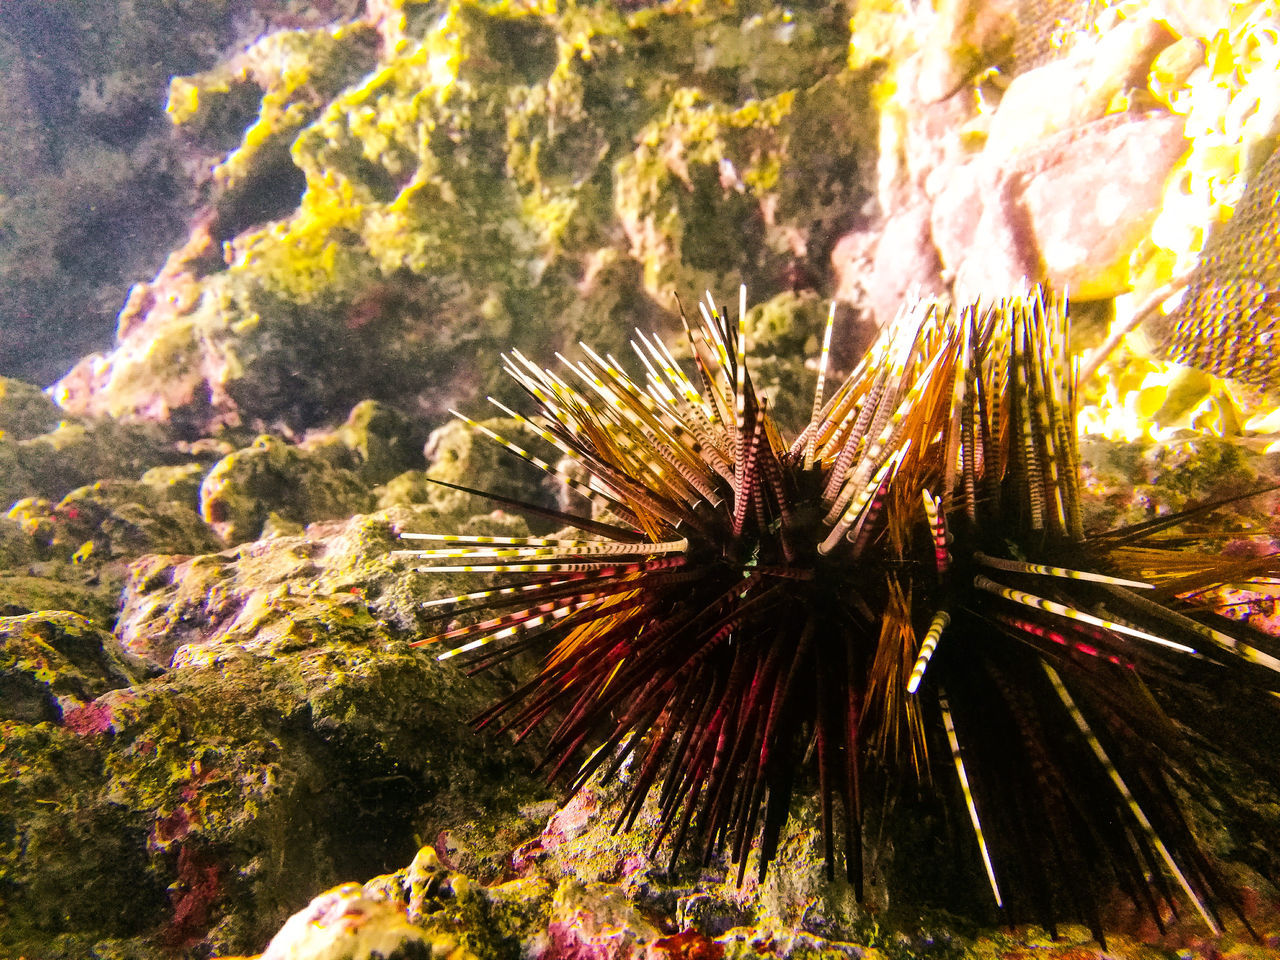 Animal Themes Beauty In Nature Close-up Coral Day Genus Murex Nature No People Outdoors Sea Sea Life Spiny, UnderSea Underwater